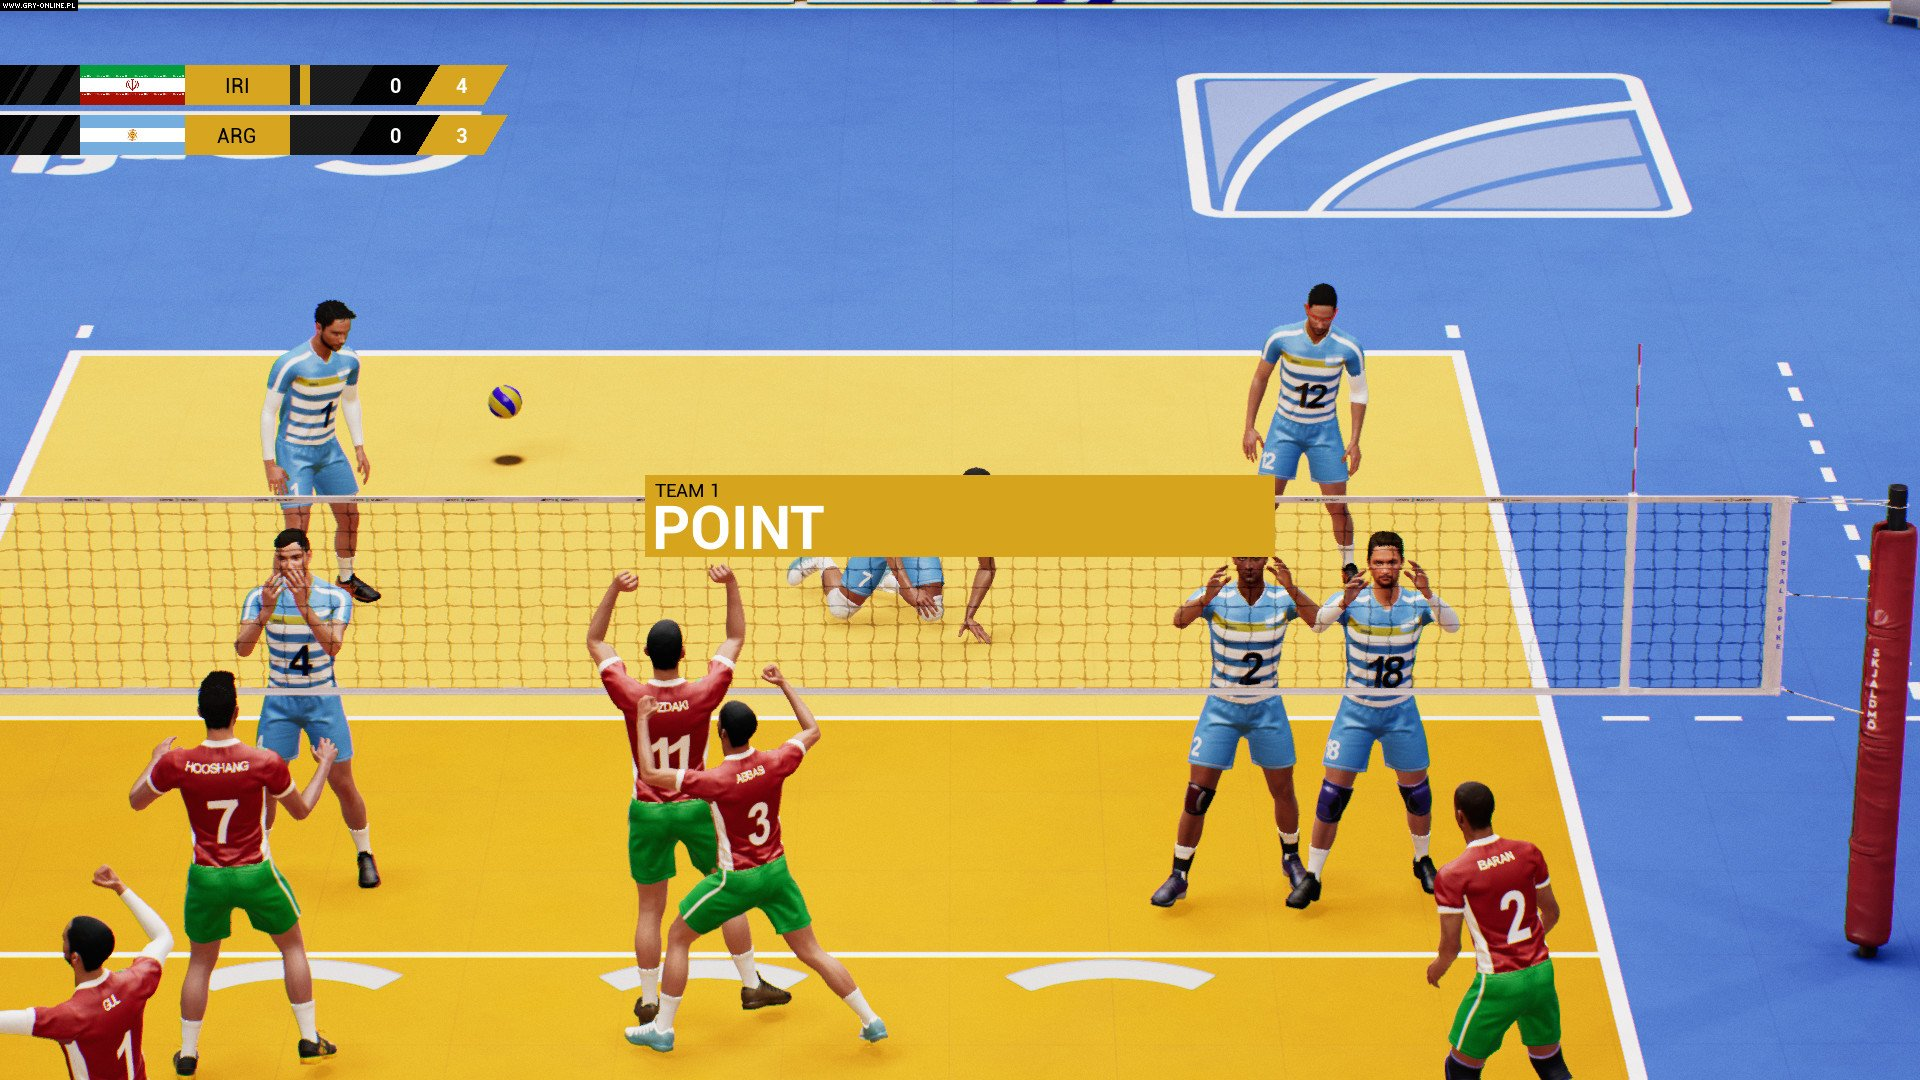 Spike Volleyball PC, PS4, XONE Games Image 4/5, Black Sheep Studio, Bigben Interactive